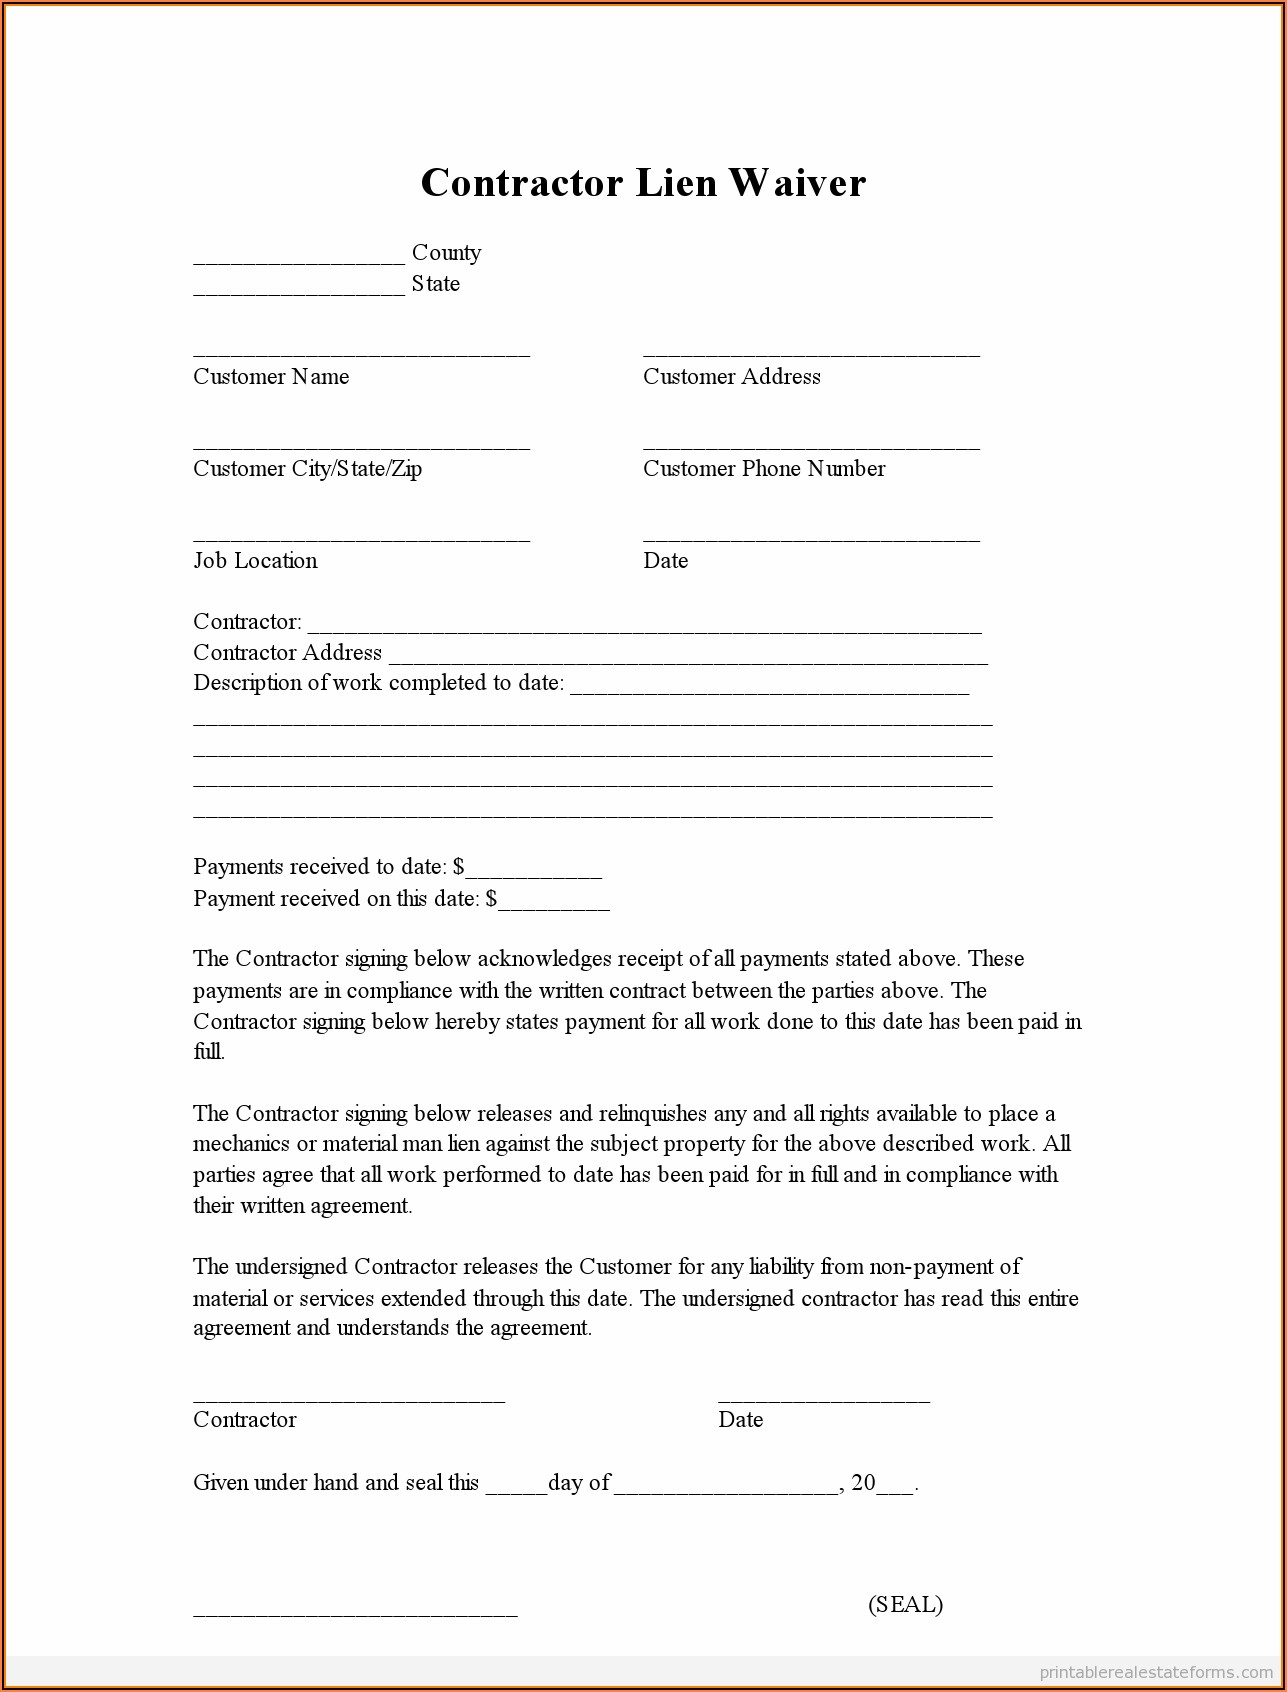 Lien Waiver Forms Free